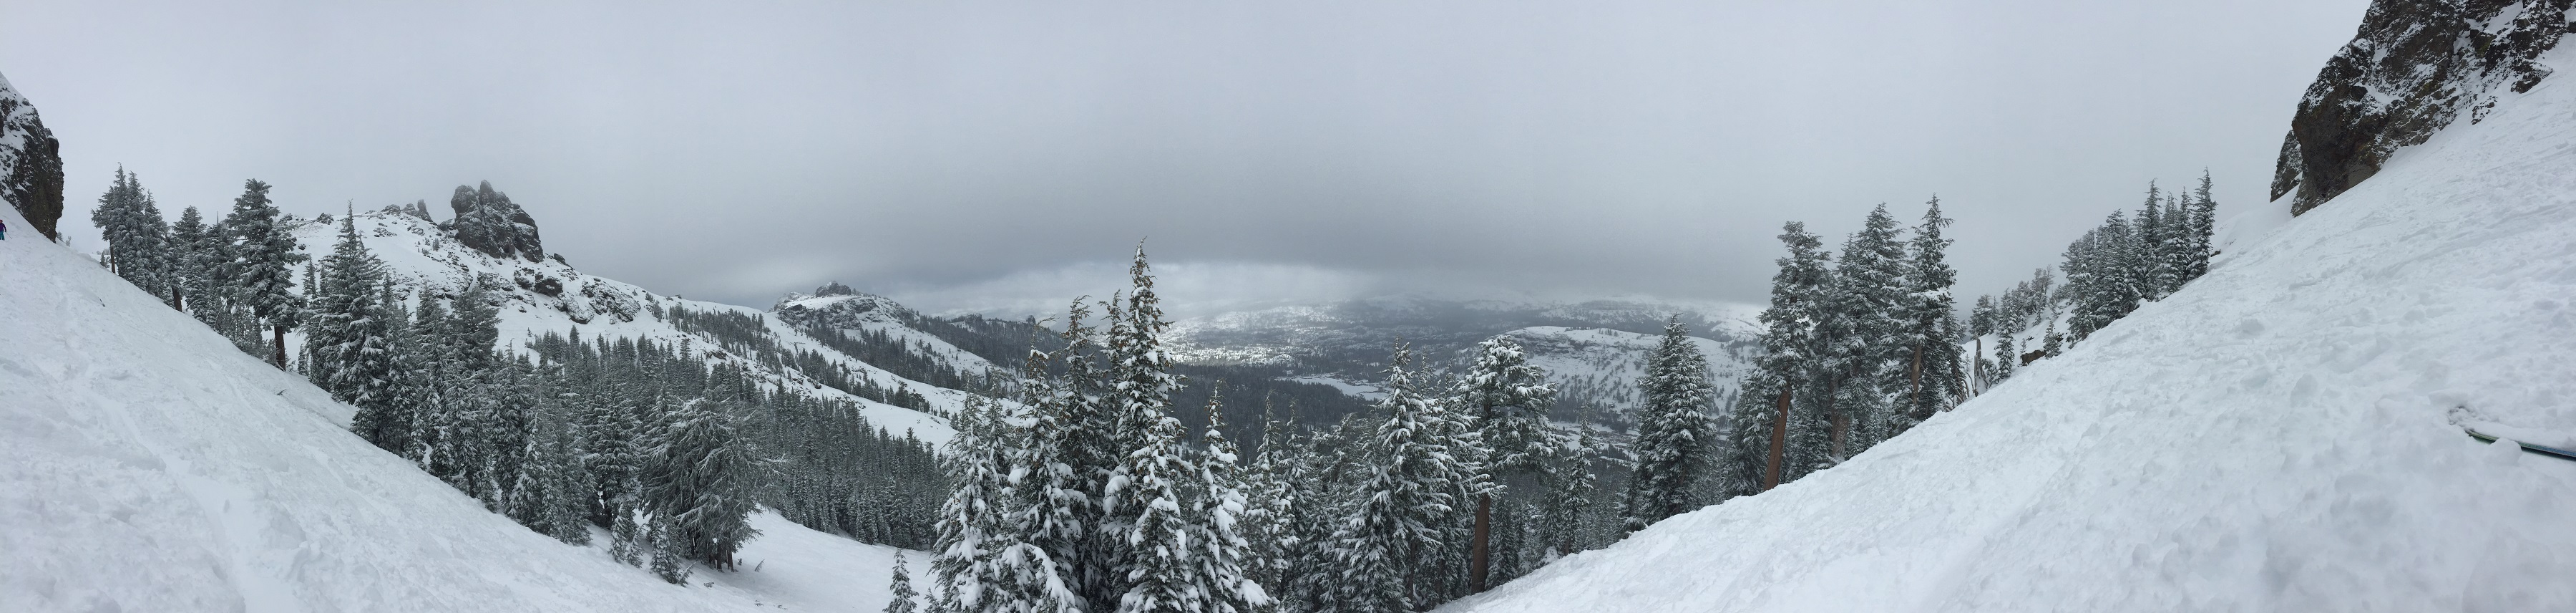 The view from the summit of Kirkwood.